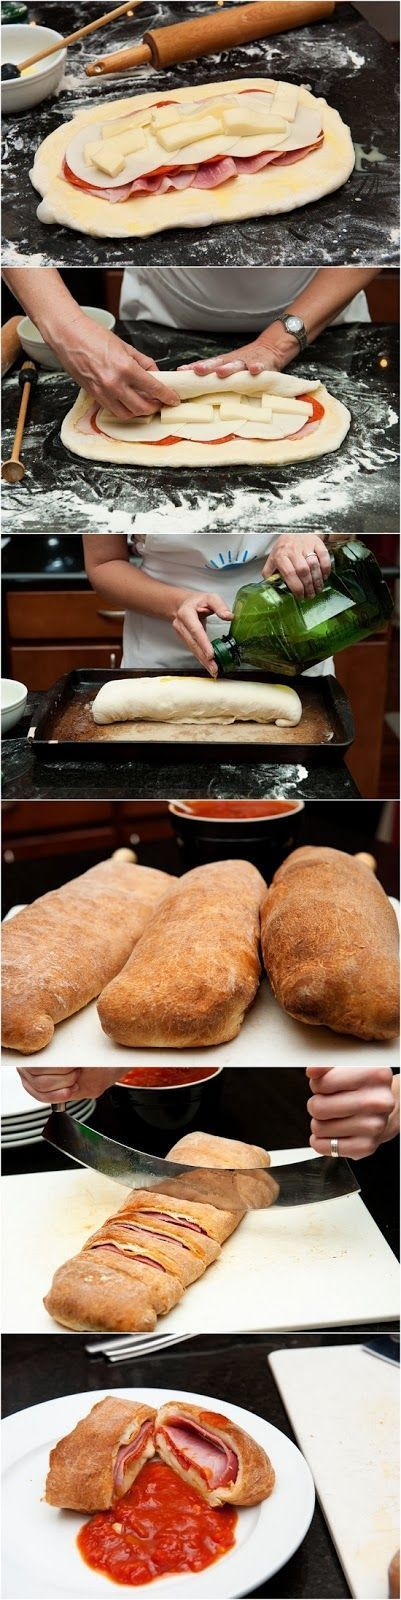 How To Easy Stromboli~Ingredients Pizza Dough Genoa Salami Ham Pepperoni Provolone Mozzarella Egg Yolk Olive Oil